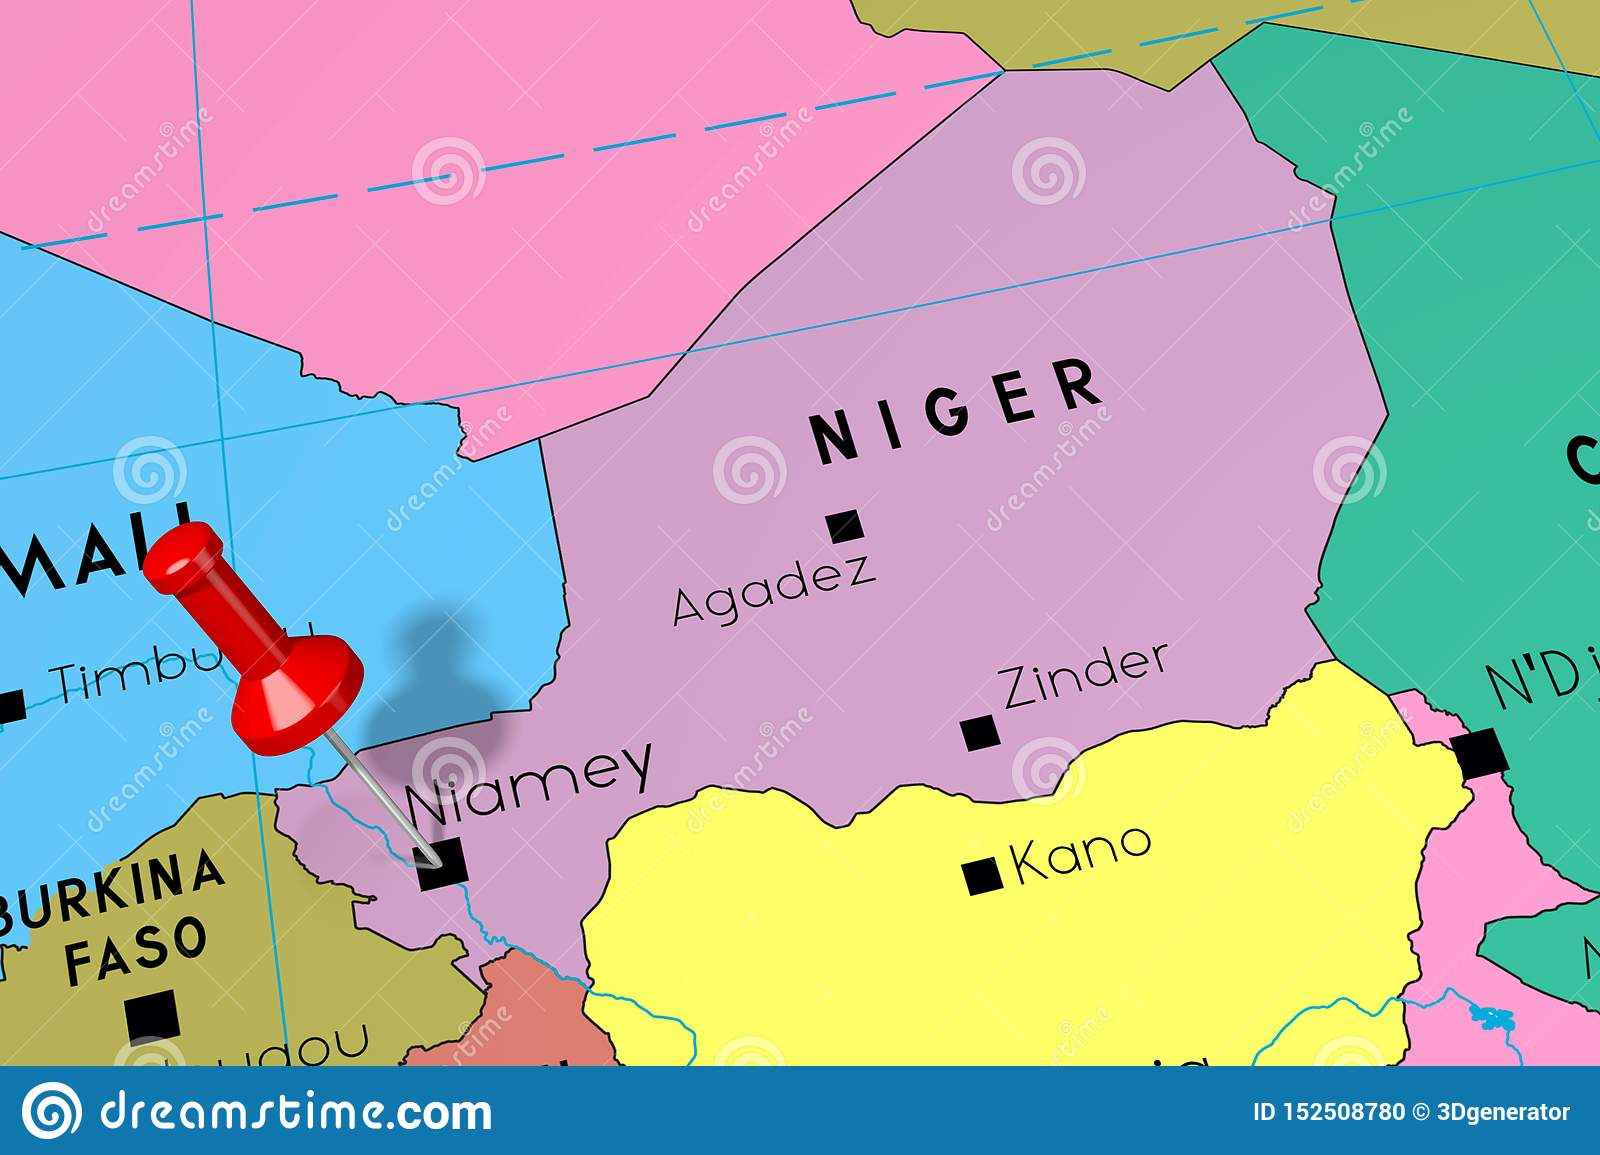 Niger, Niamey - Capital City, Pinned On Political Map Stock ...